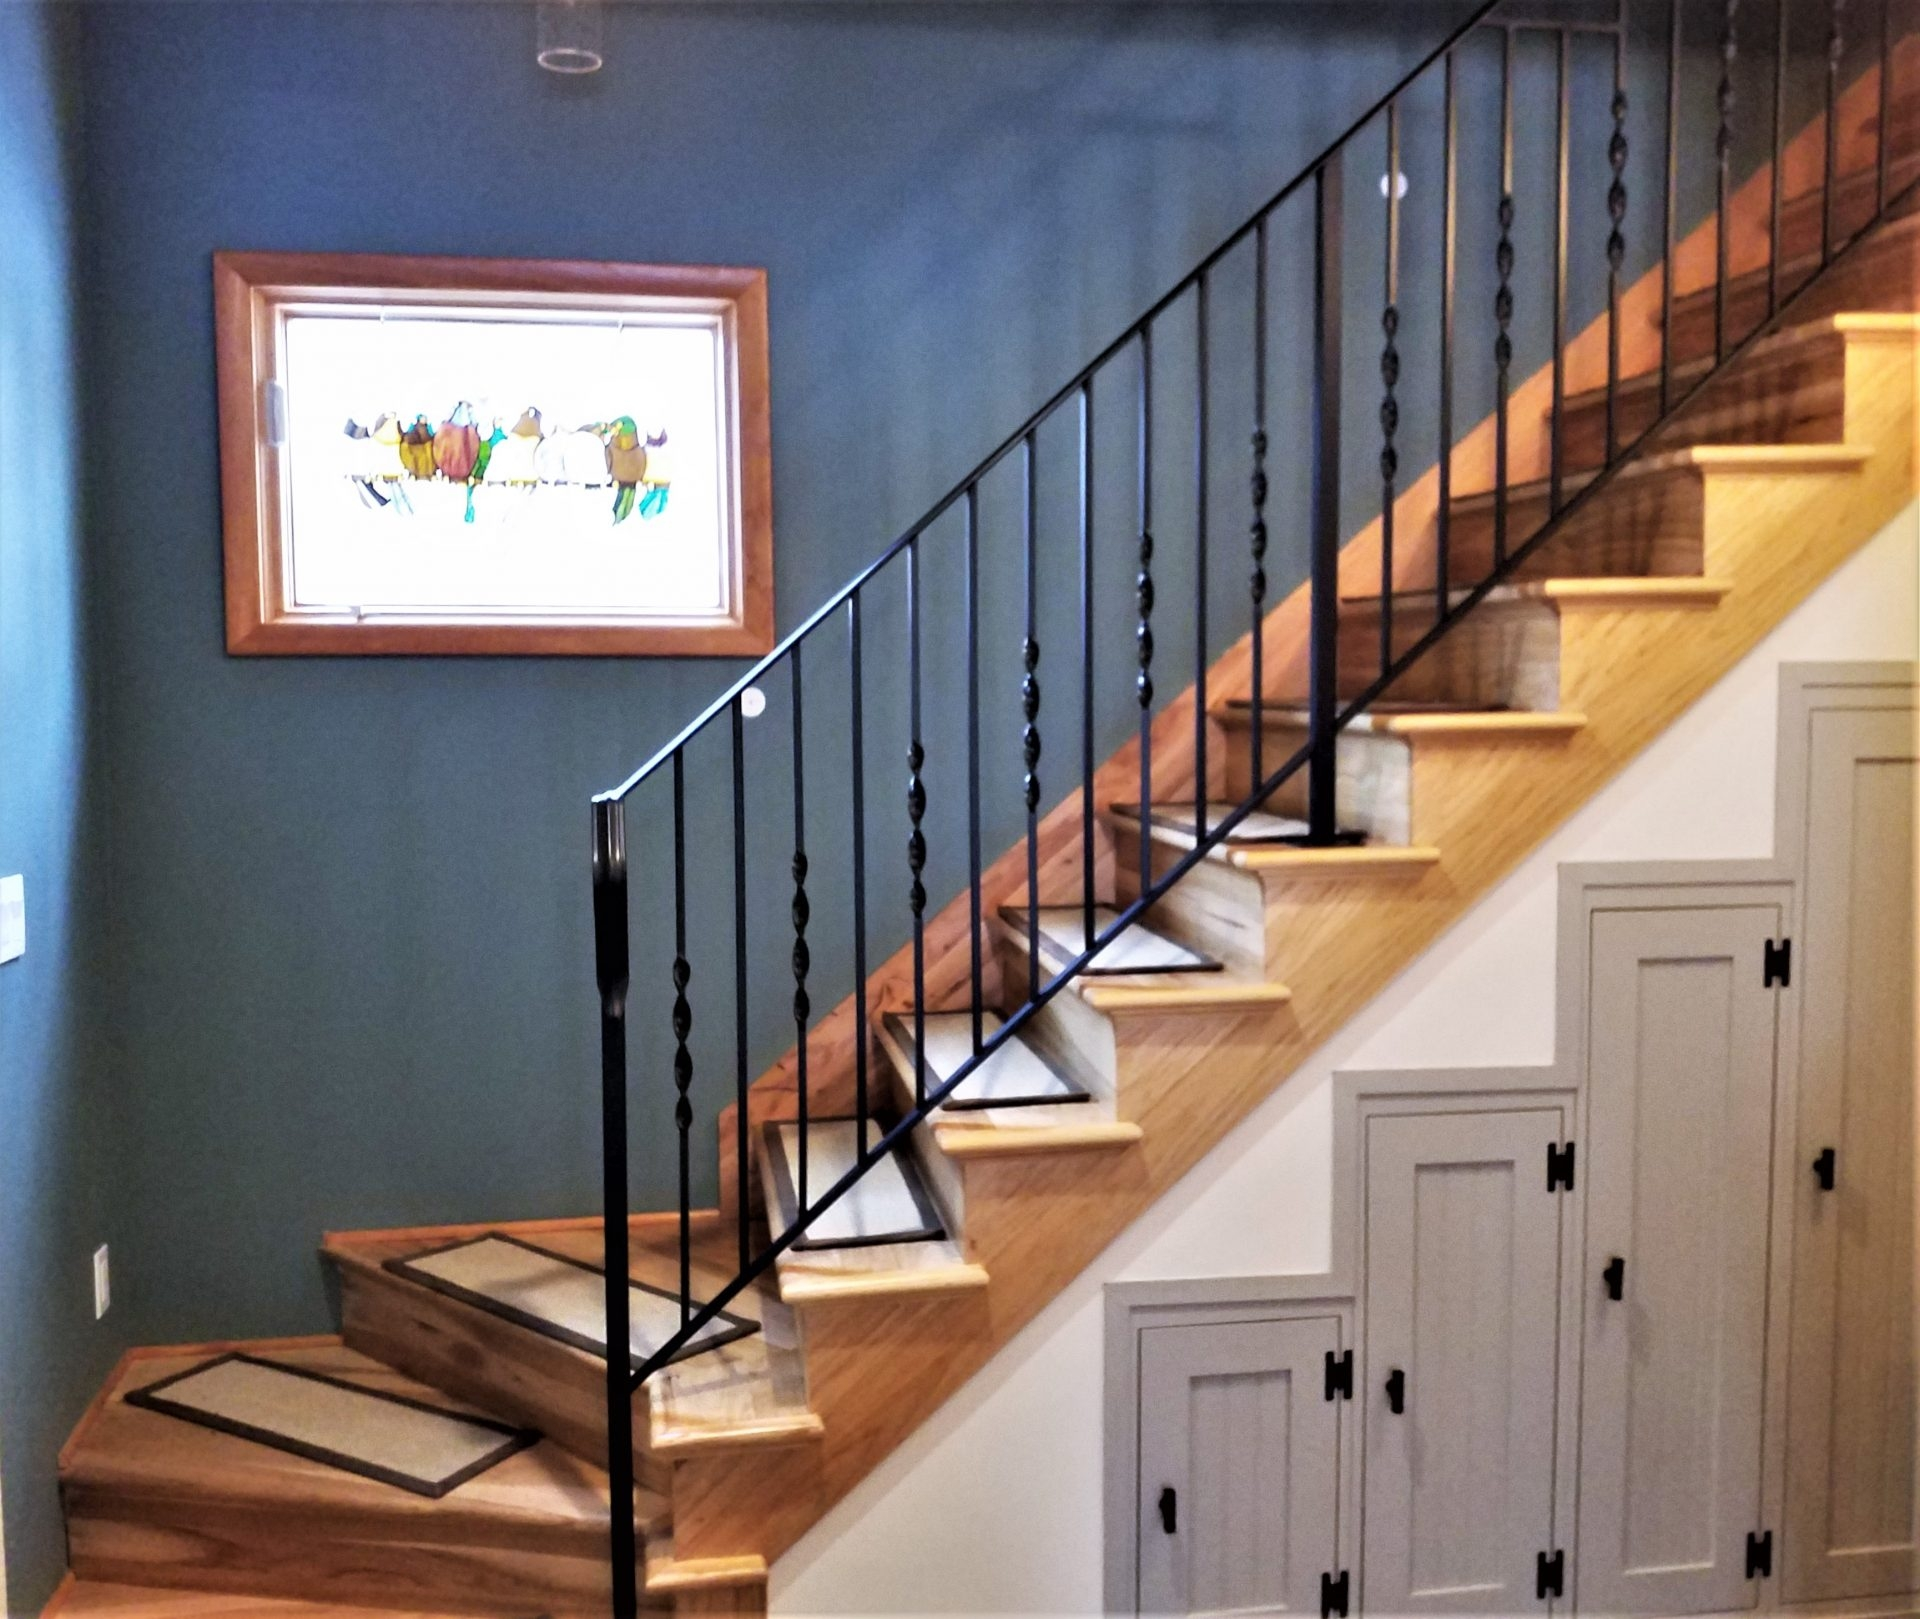 Twisted Wrought Iron Stair Railing Great Lakes Metal Fabrication   Wrought Iron Stair Railings Interior Cost   Stair Parts   Iron Staircase Railings   Rod Iron Balusters   Wood   Stair Spindles